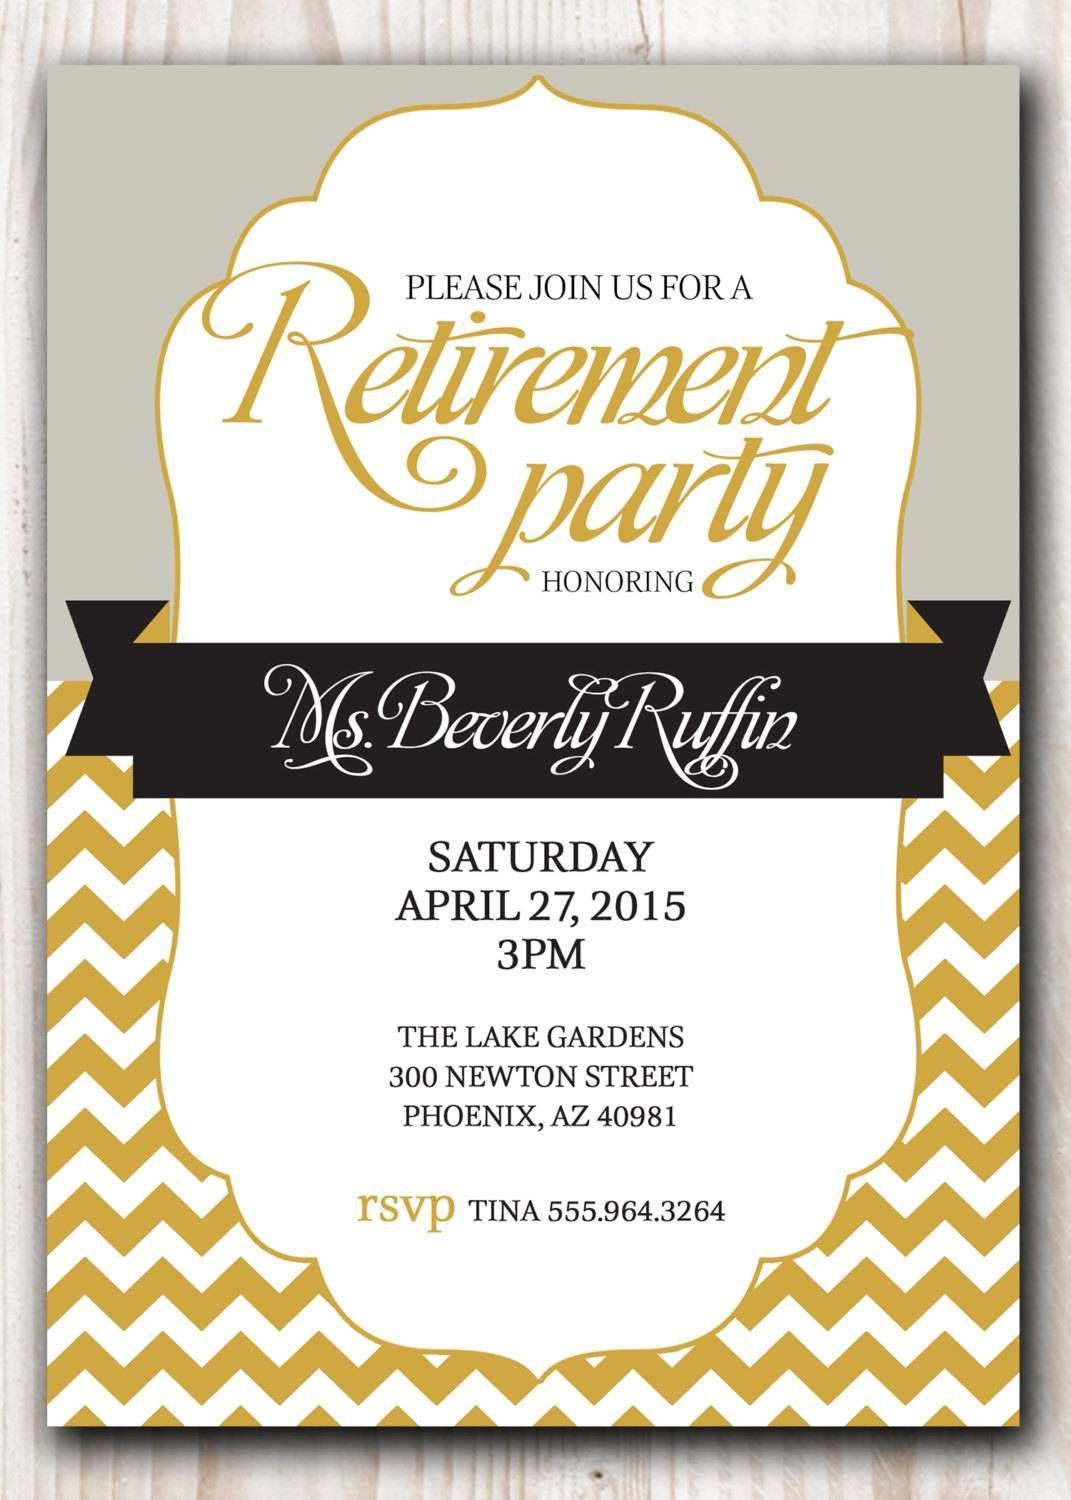 006 Unforgettable Retirement Party Invitation Template Picture  Templates For Free Nurse M WordFull